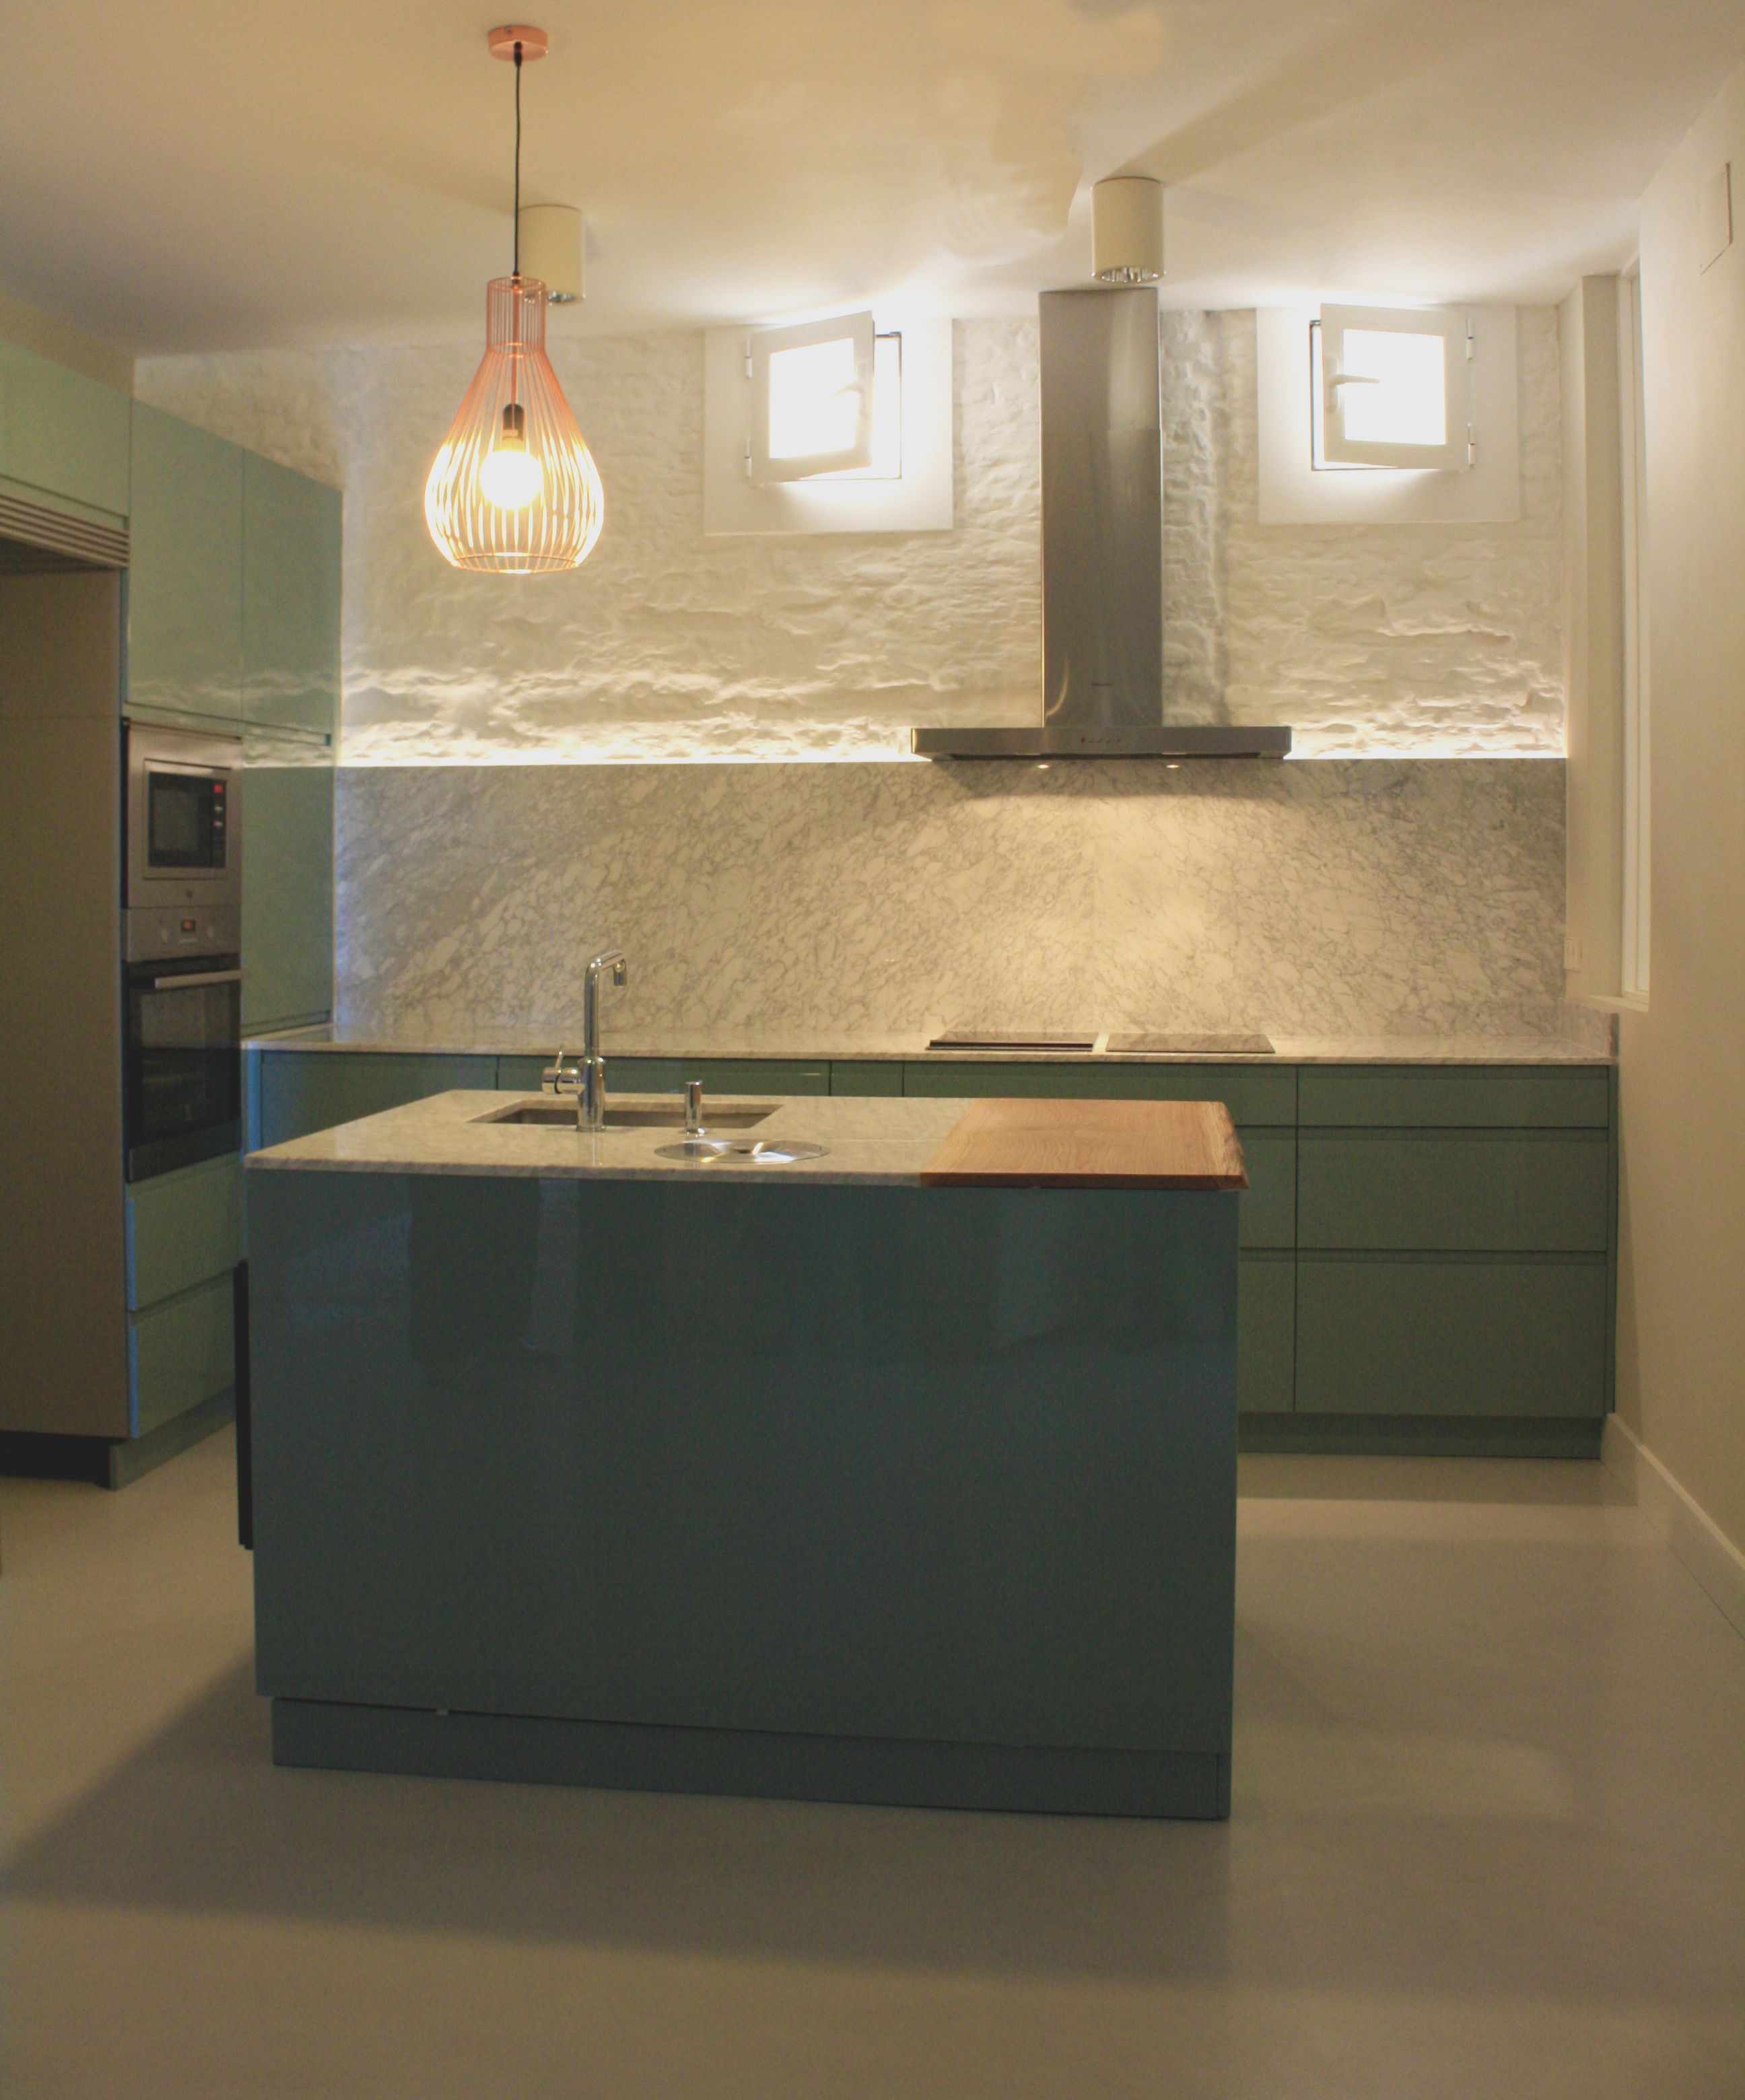 Ideas de #Cocina, estilo #Contemporaneo color #Verde, #Blanco, #Gris ...